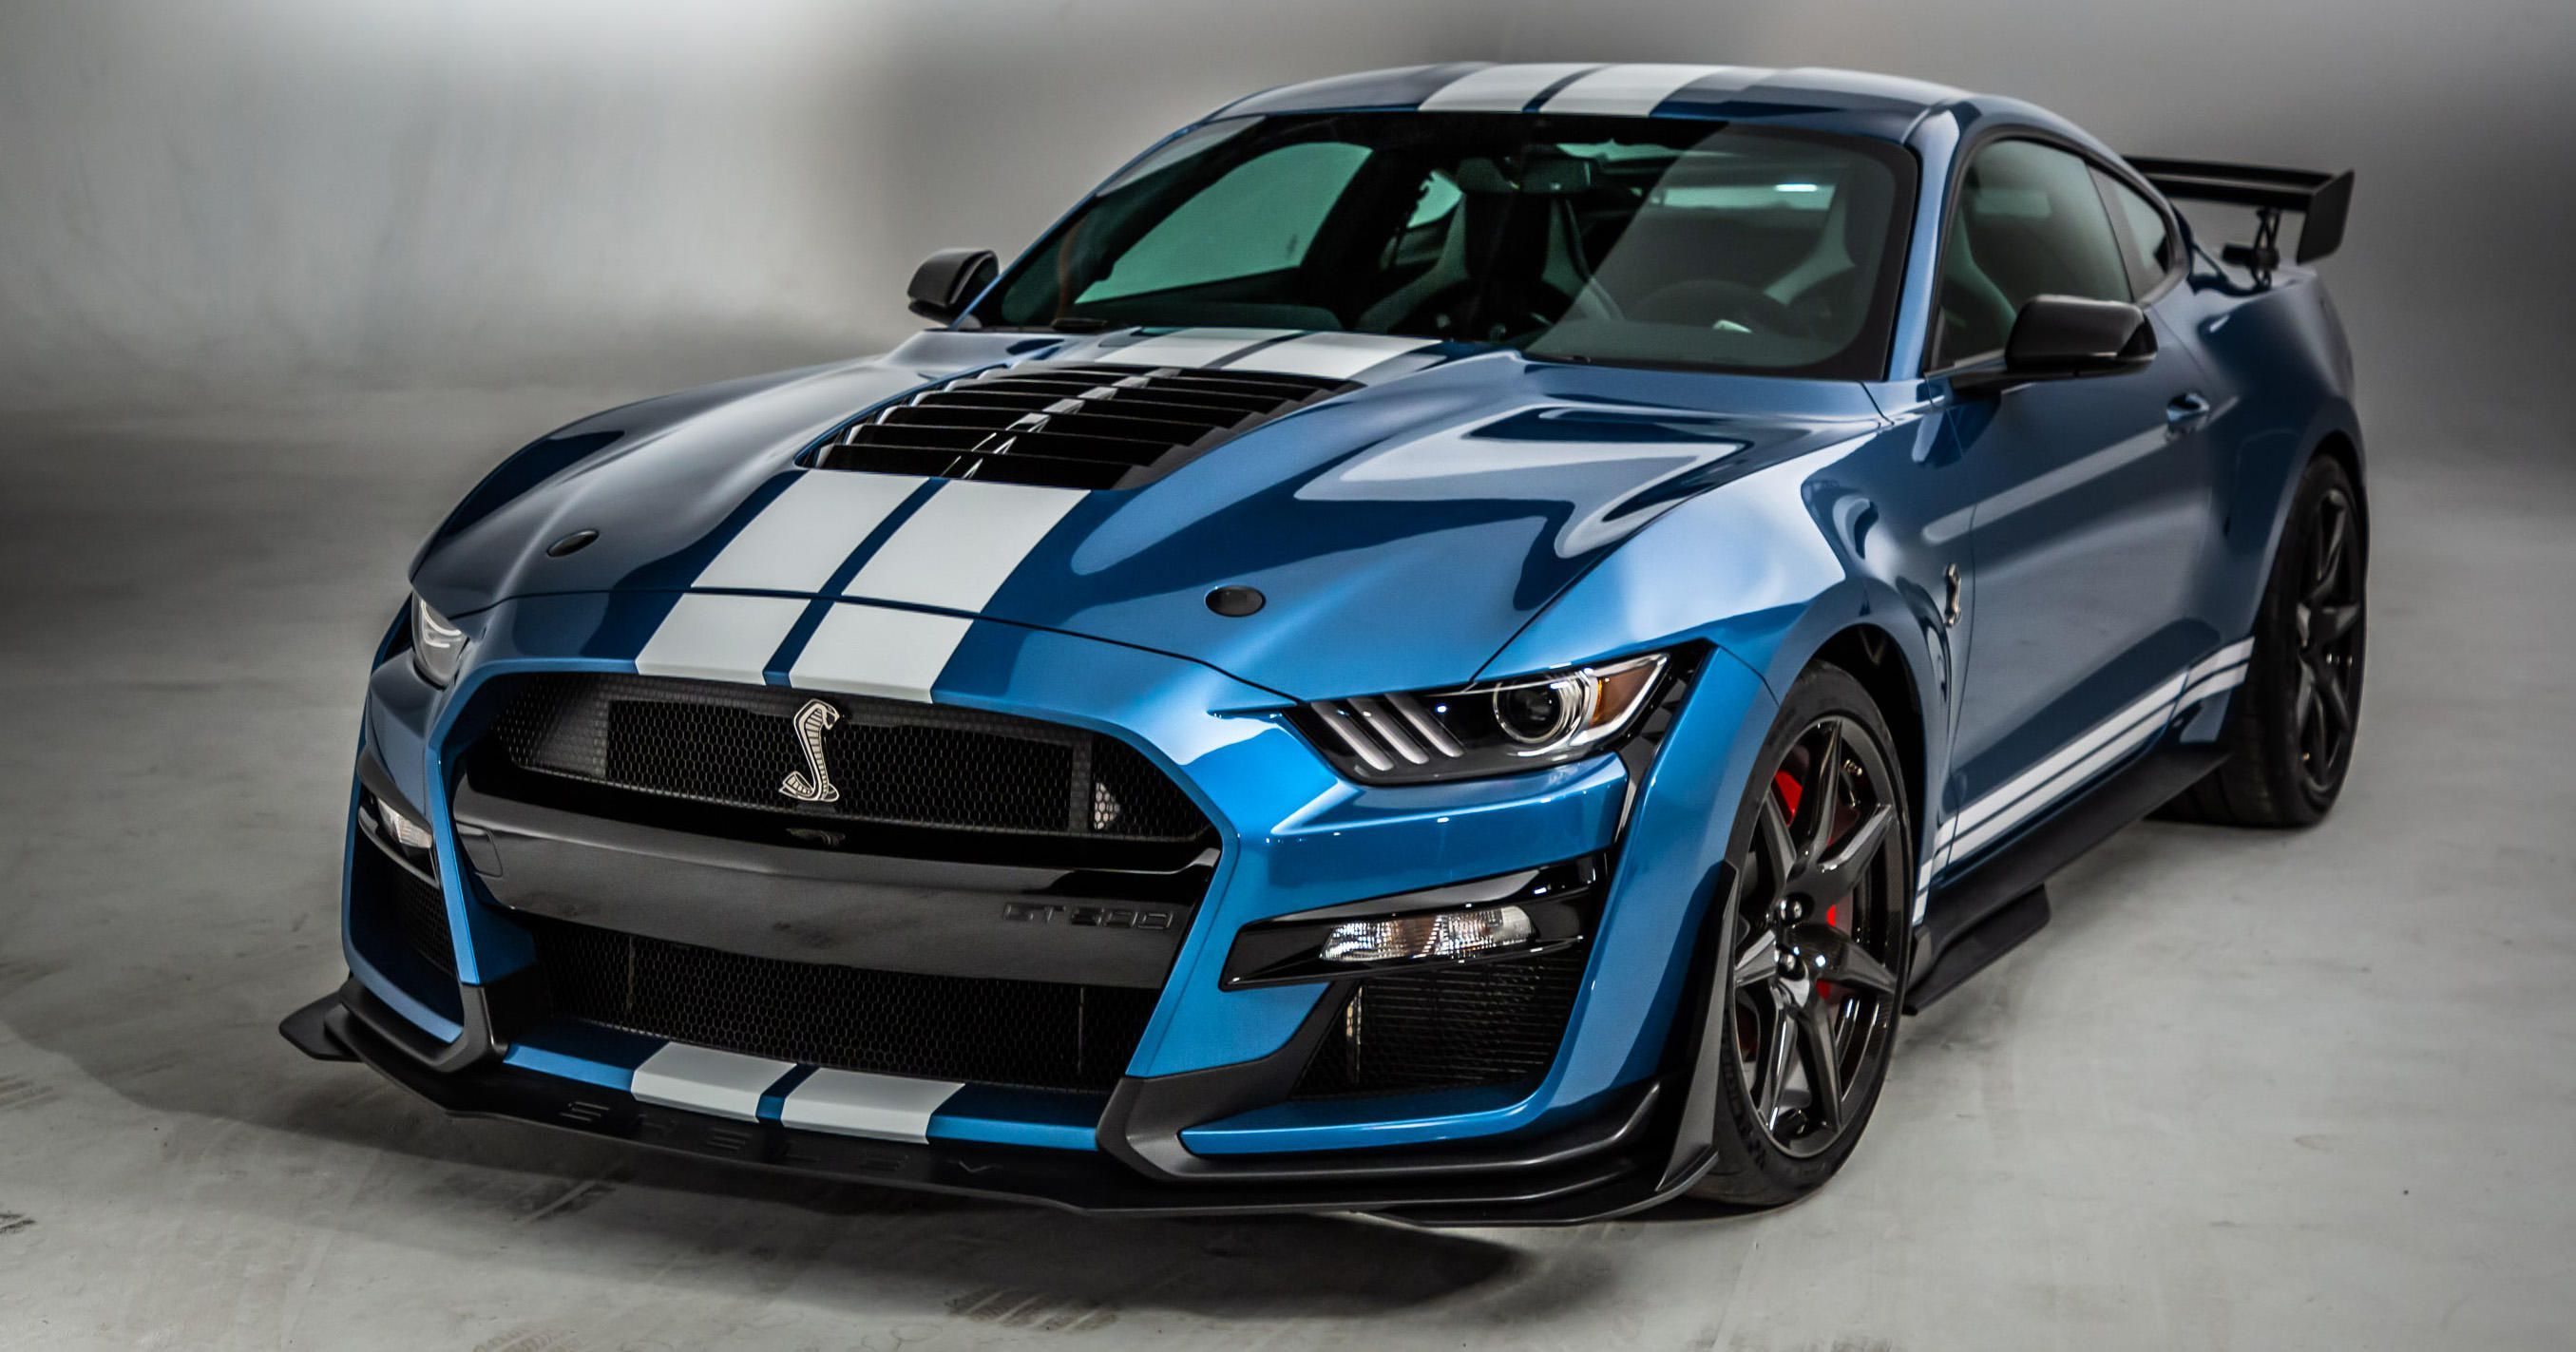 2020 Ford Mustang Gt500 Price, Design and Review